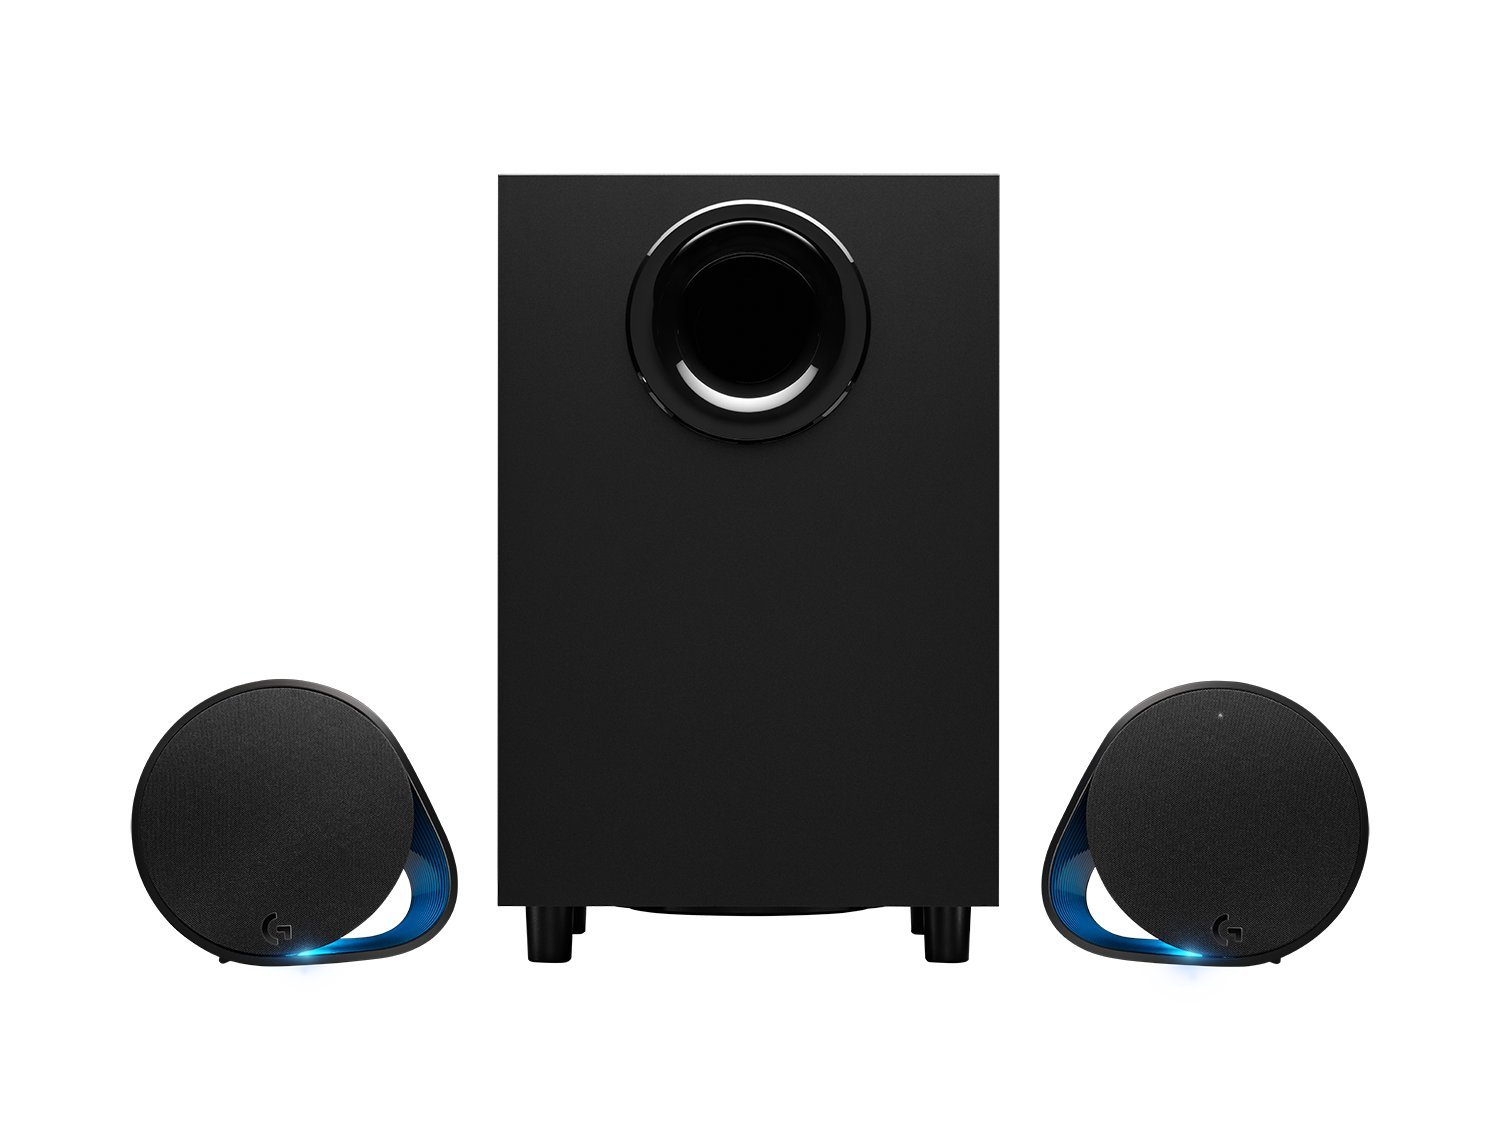 Logitech G560 LIGHTSYNC PC Gaming Speakers with Game Driven RGB Lighting 980-001300